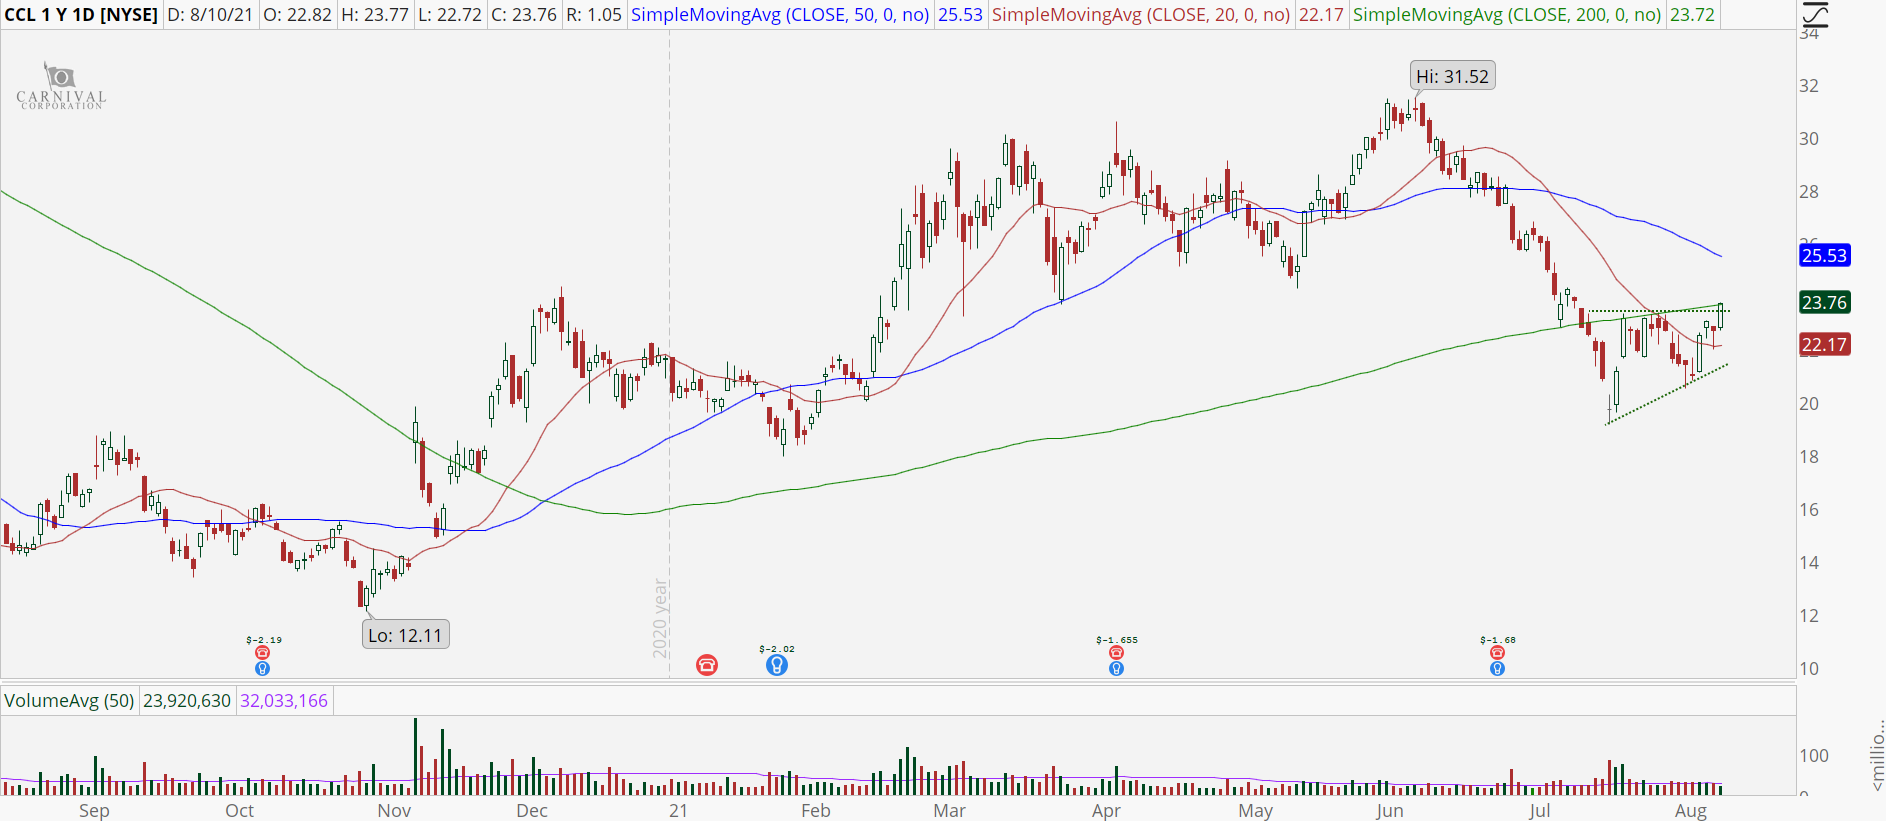 Carnival (CCL) daily stock chart with ascending triangle